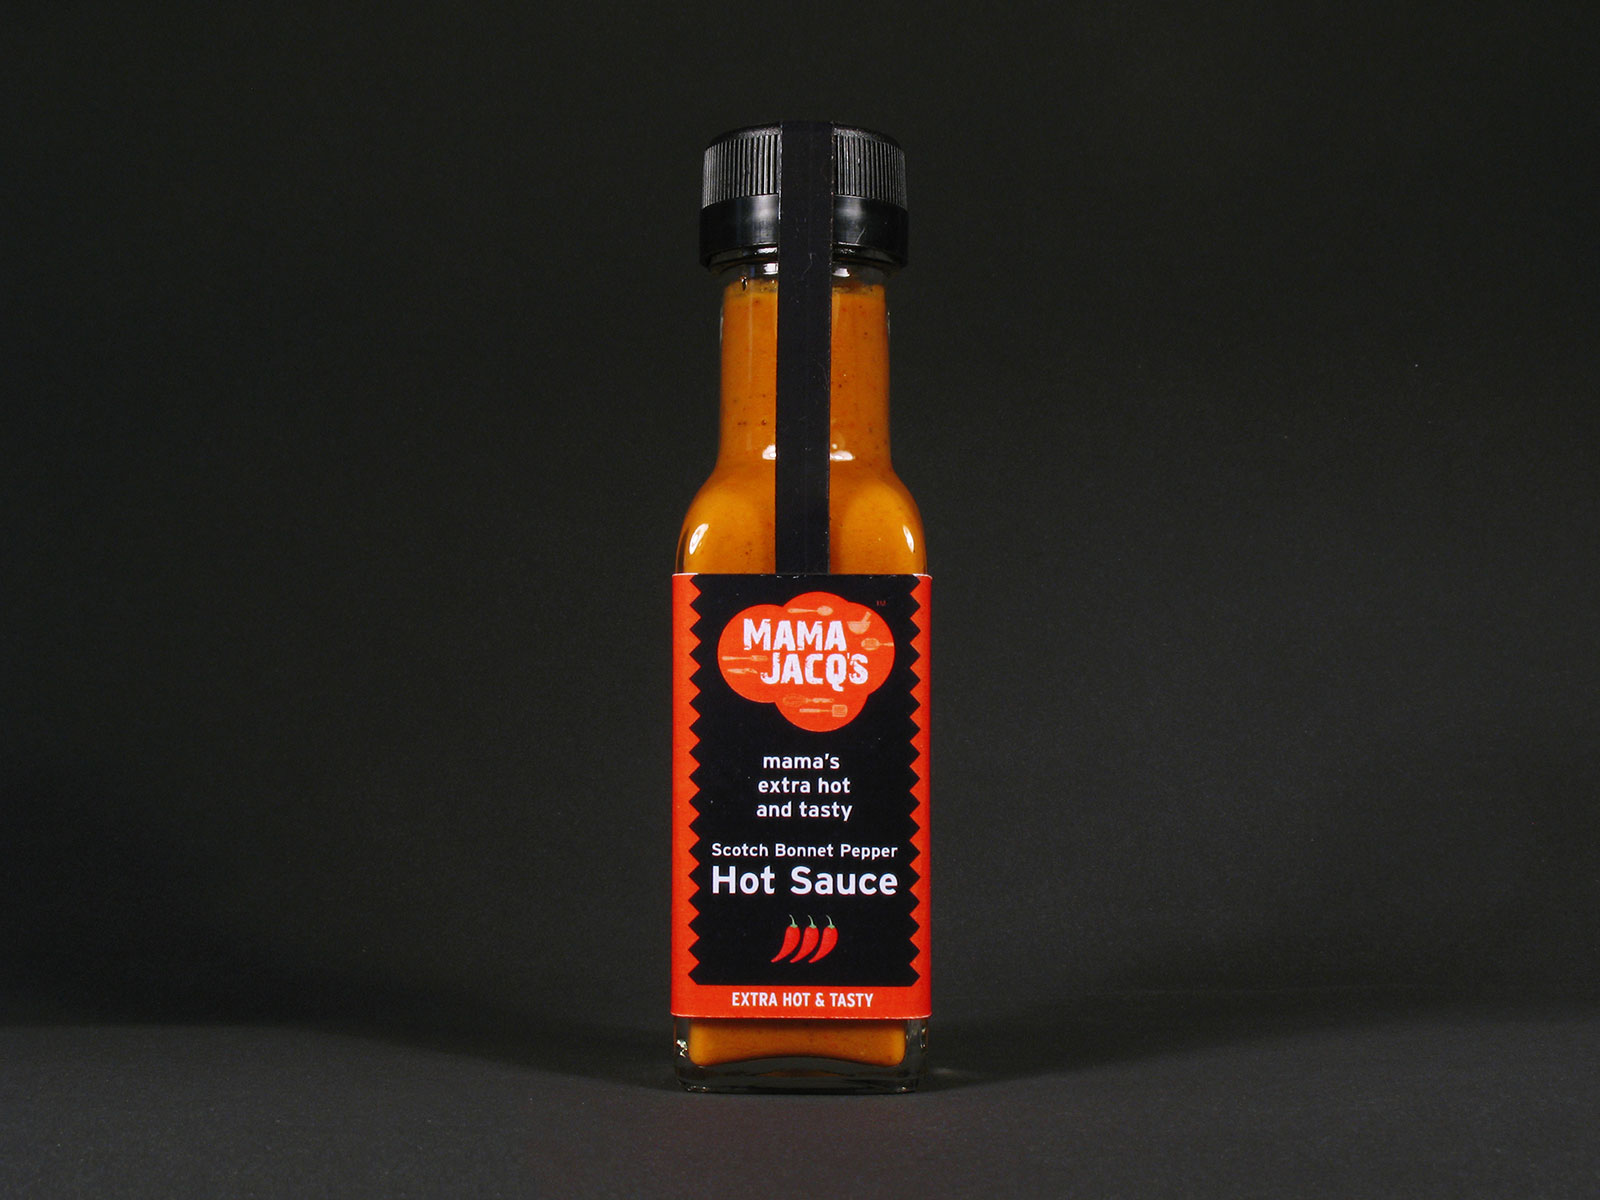 Mama Jacq's Hot Sauce Label Design